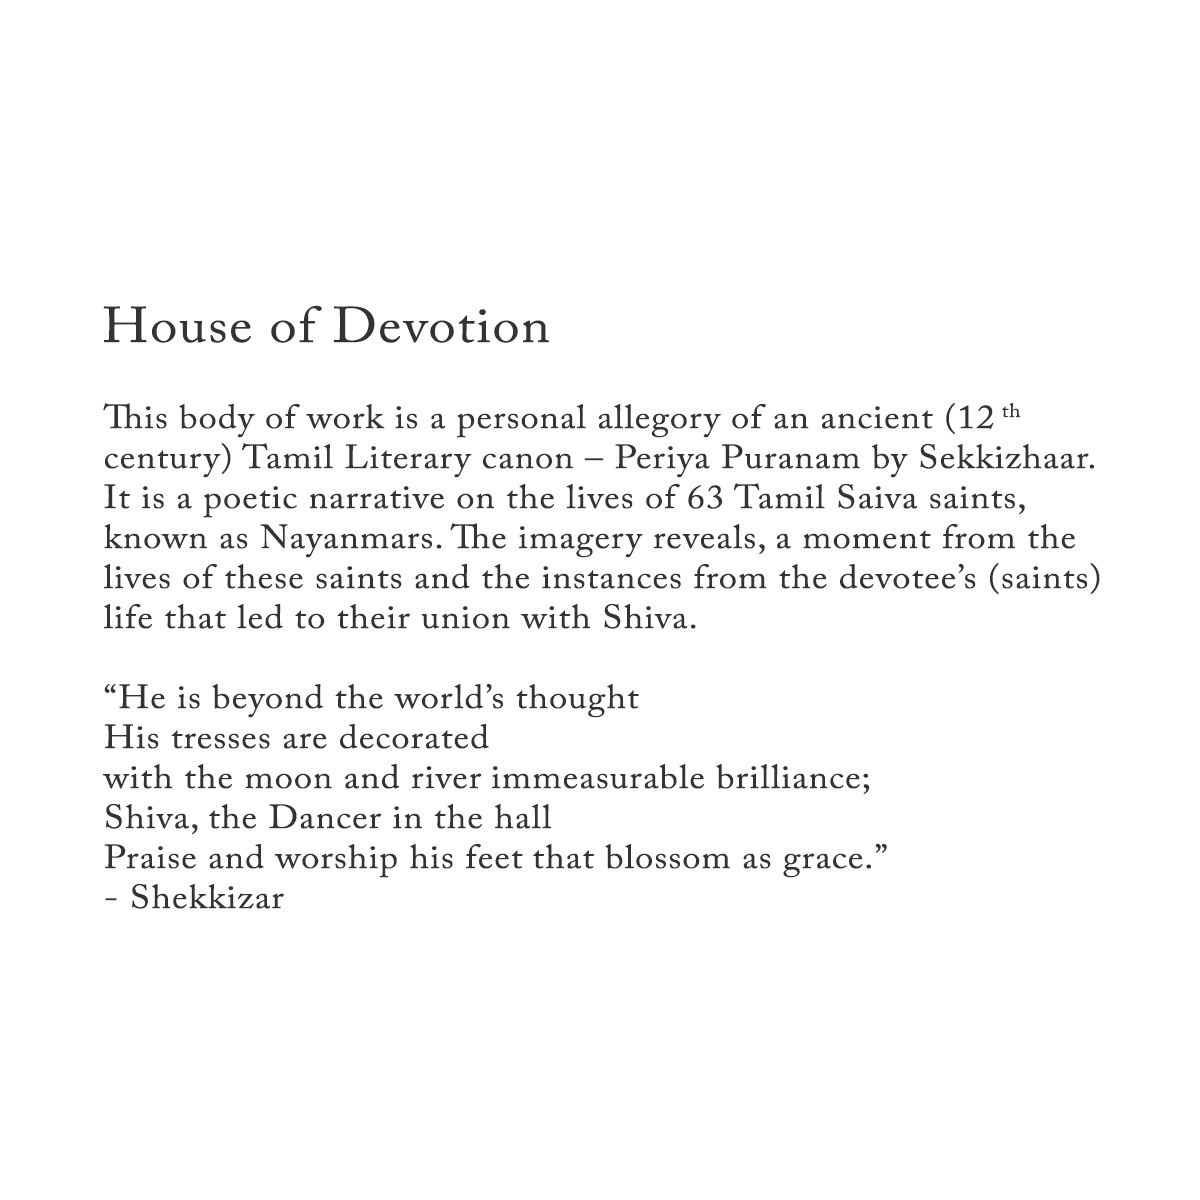 House of Devotion